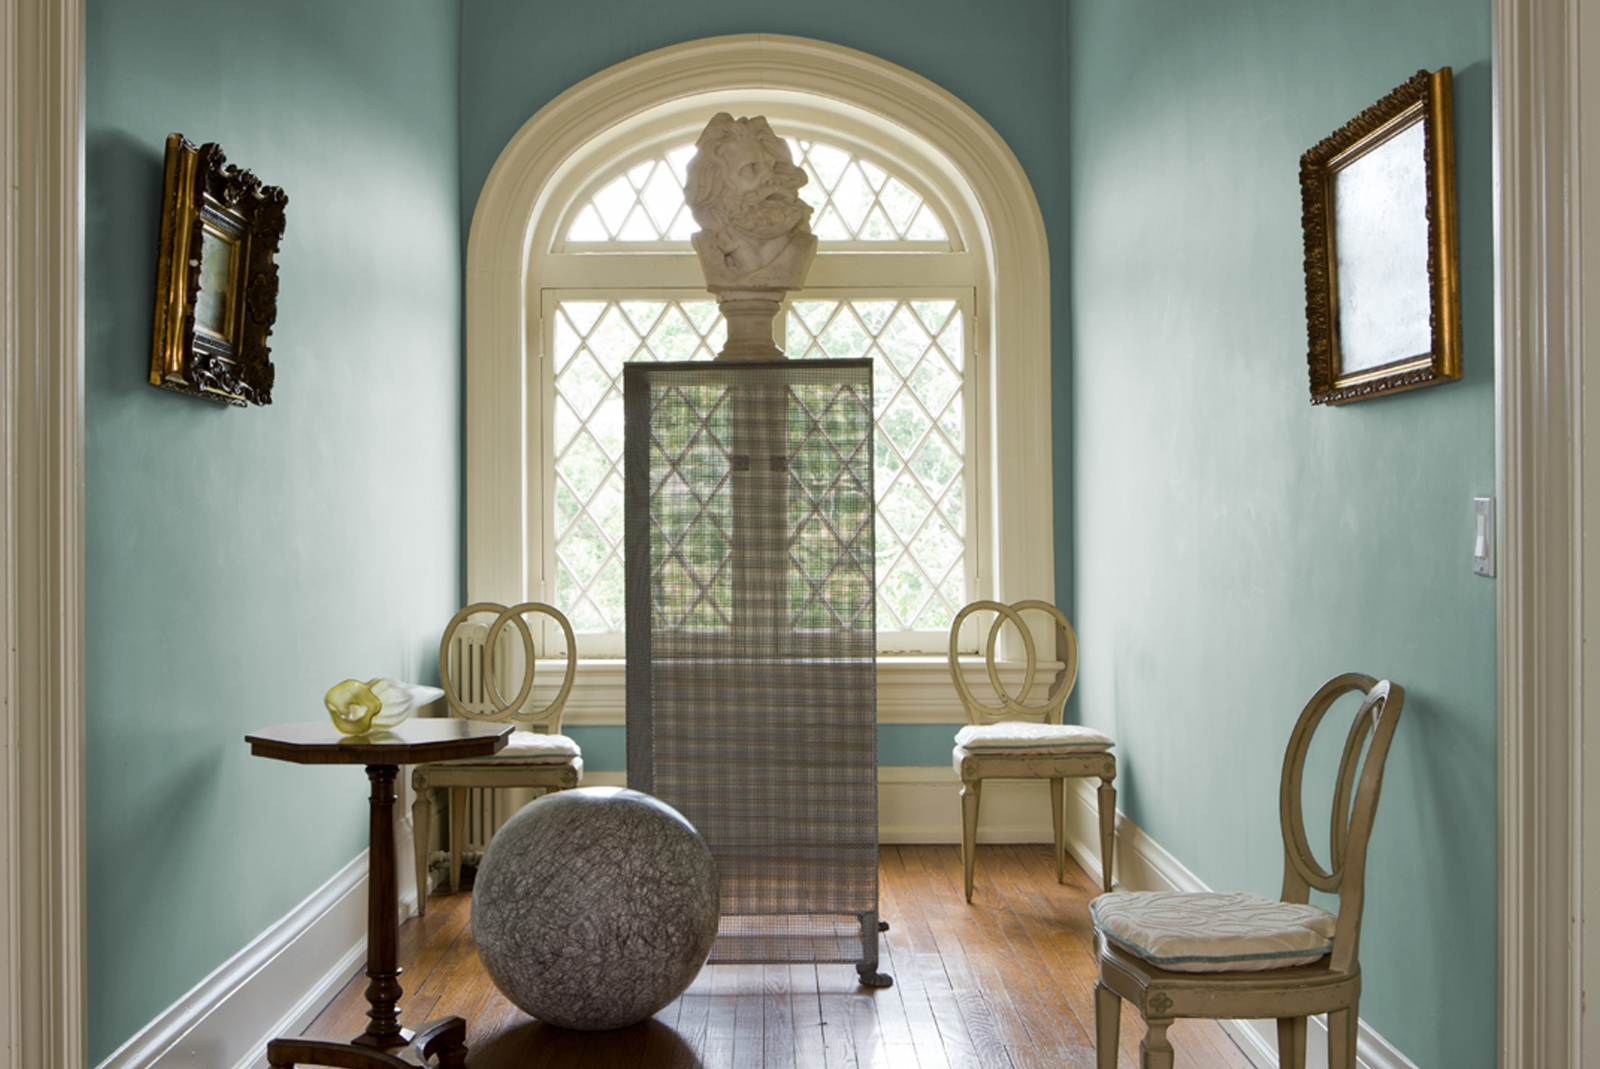 Dixon uses C2 Paint's Misty Morn as a clean and cool backdrop in this traditional room.